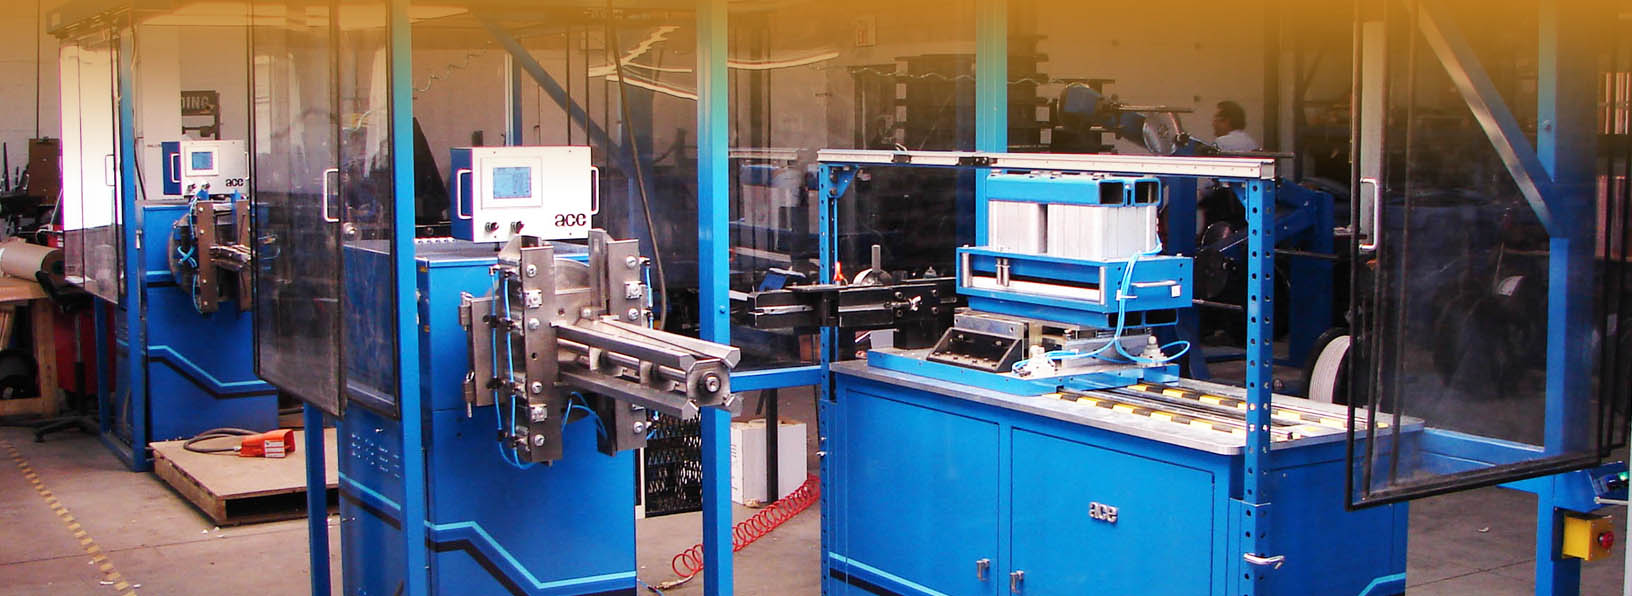 Coil Winding System